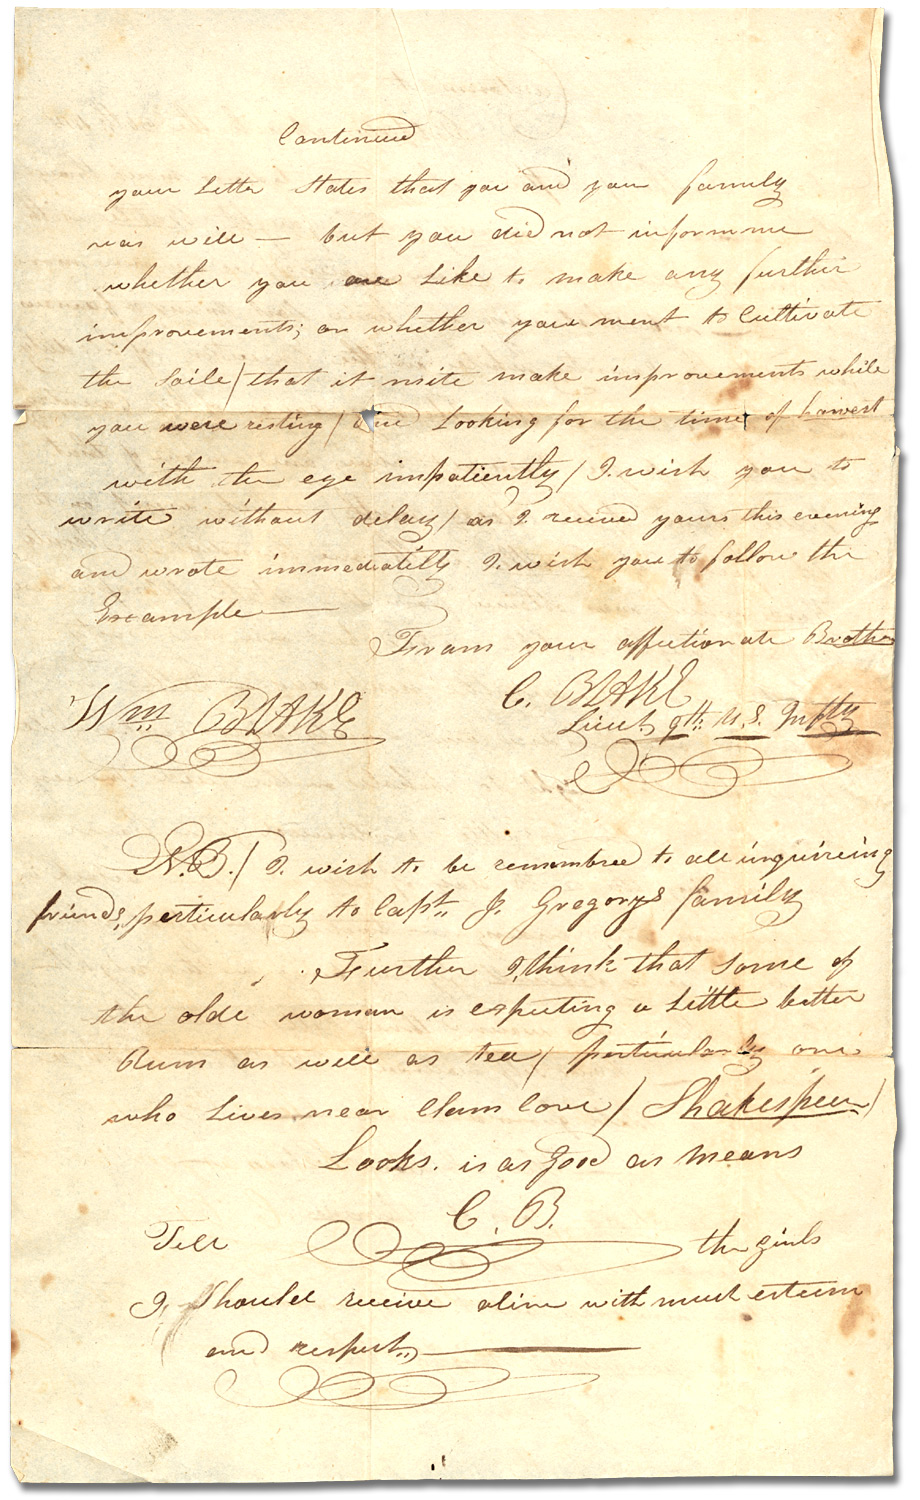 Lettre du Lt. C. Blake, 9th U.S. Infantry à son frère William Blake, 30 mars 1815, [page 2]